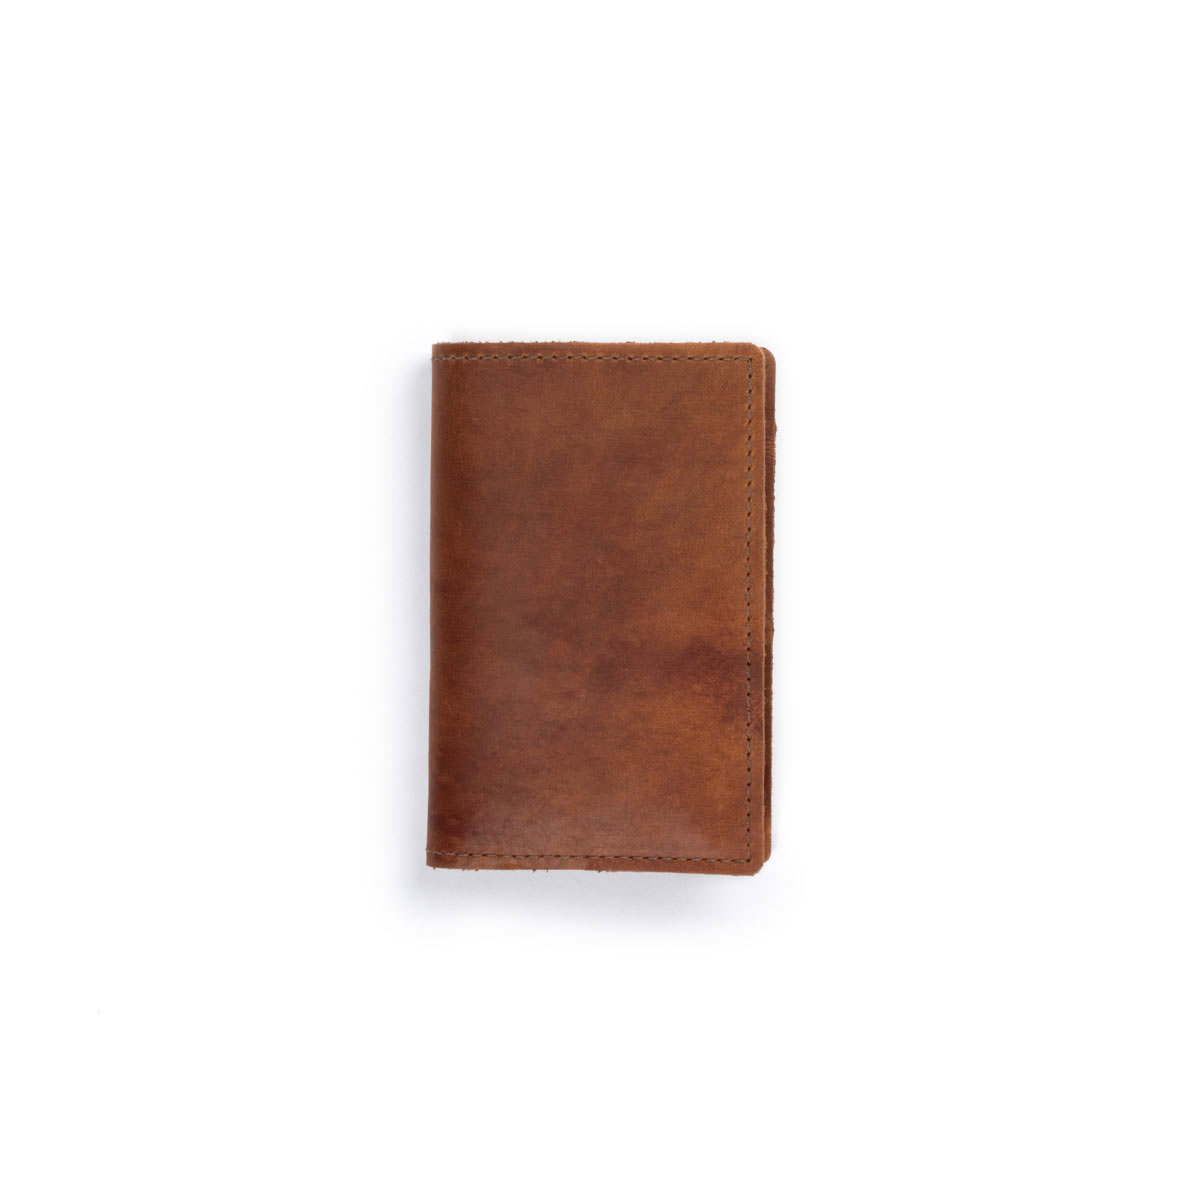 Rustico Leather Field Notebooks